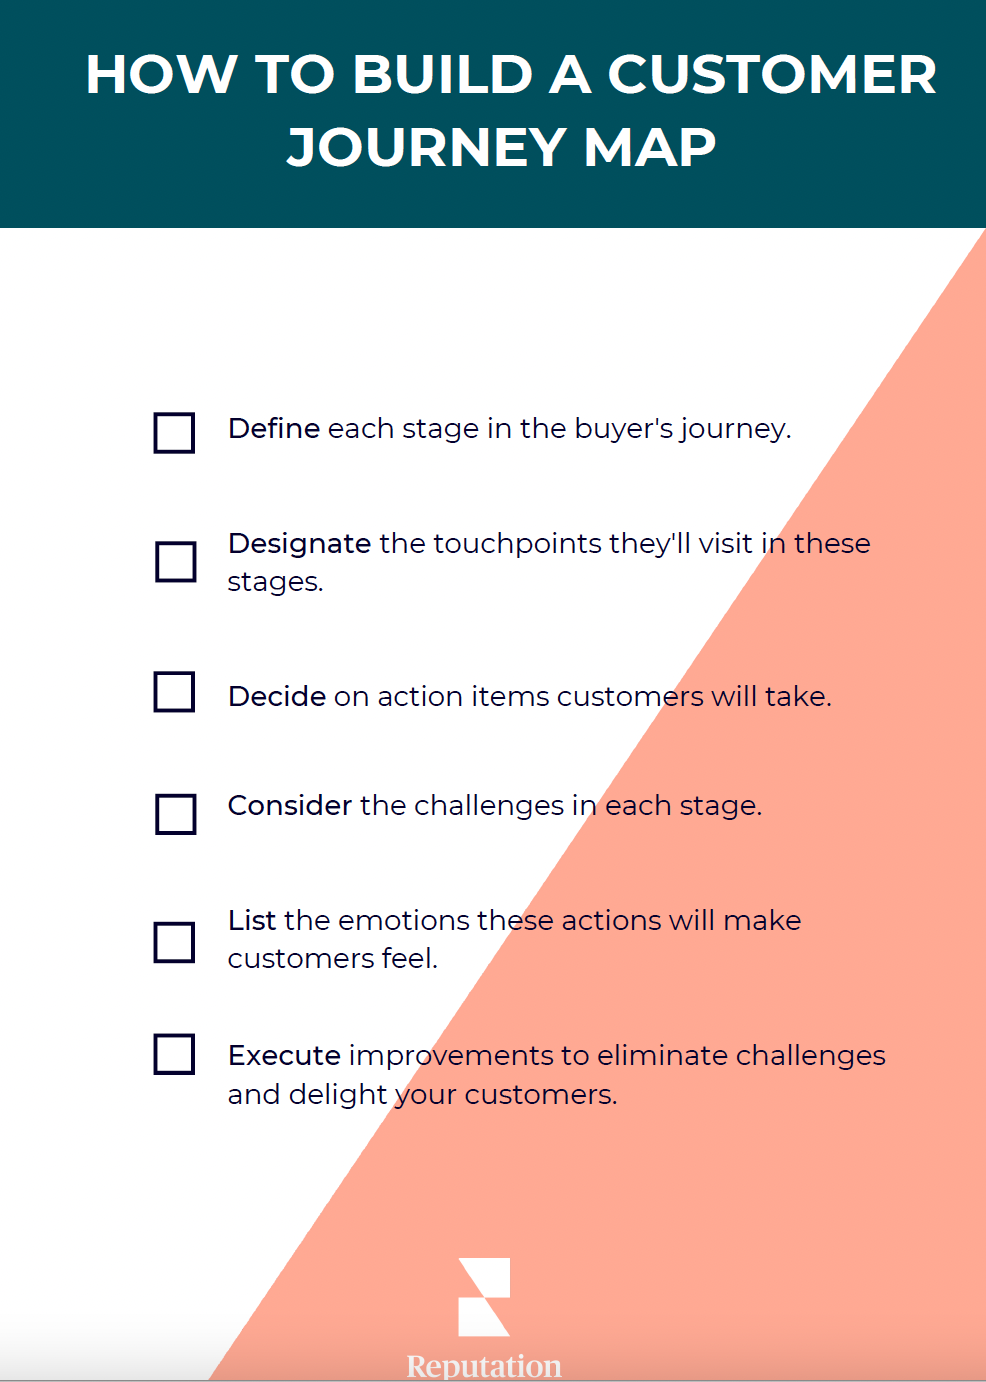 How to Map Out the Customer Journey